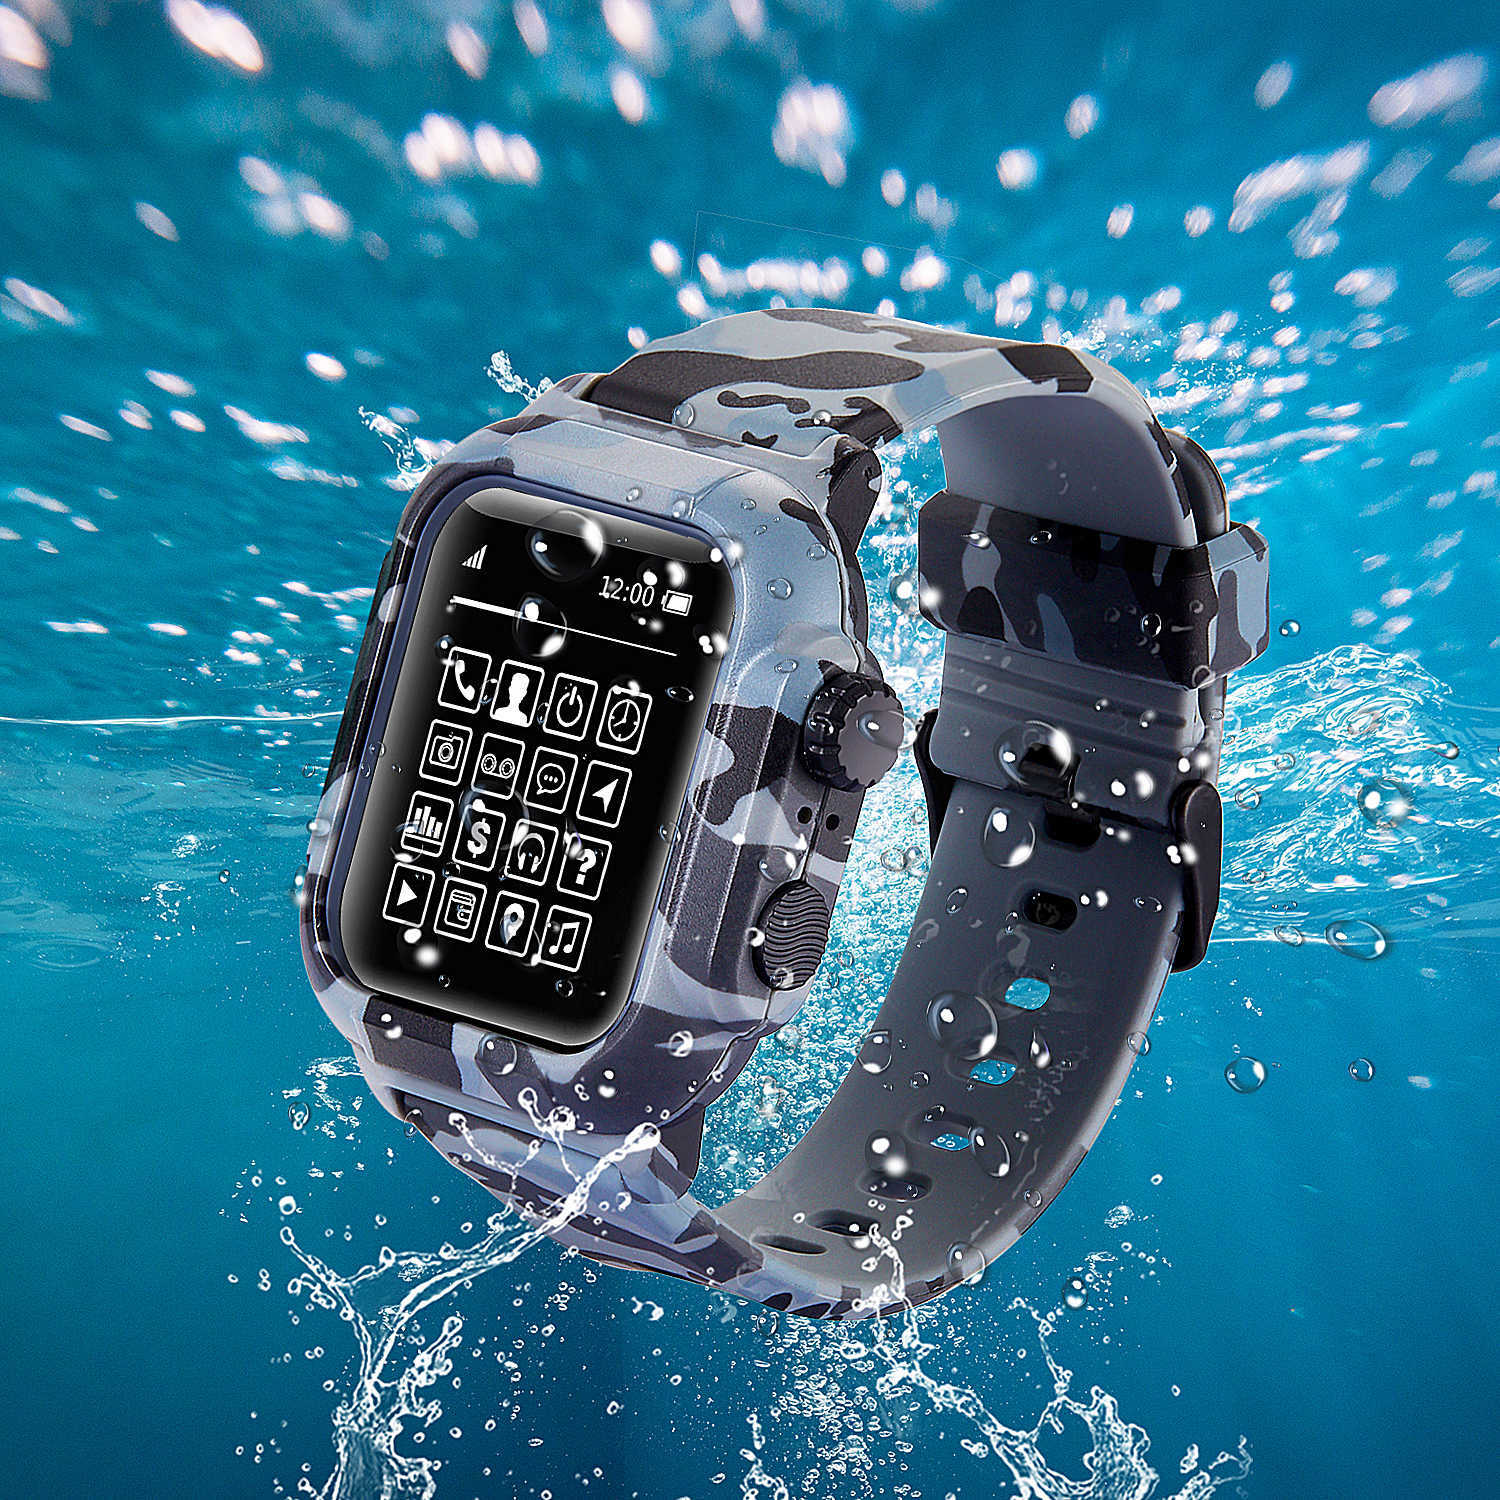 Waterproof case For <font><b>Apple</b></font> <font><b>Watch</b></font> <font><b>42mm</b></font> band iwatch Silicone Strap 44mm wrist <font><b>pulseira</b></font> Bracelet smart <font><b>watch</b></font> Accessories loop image